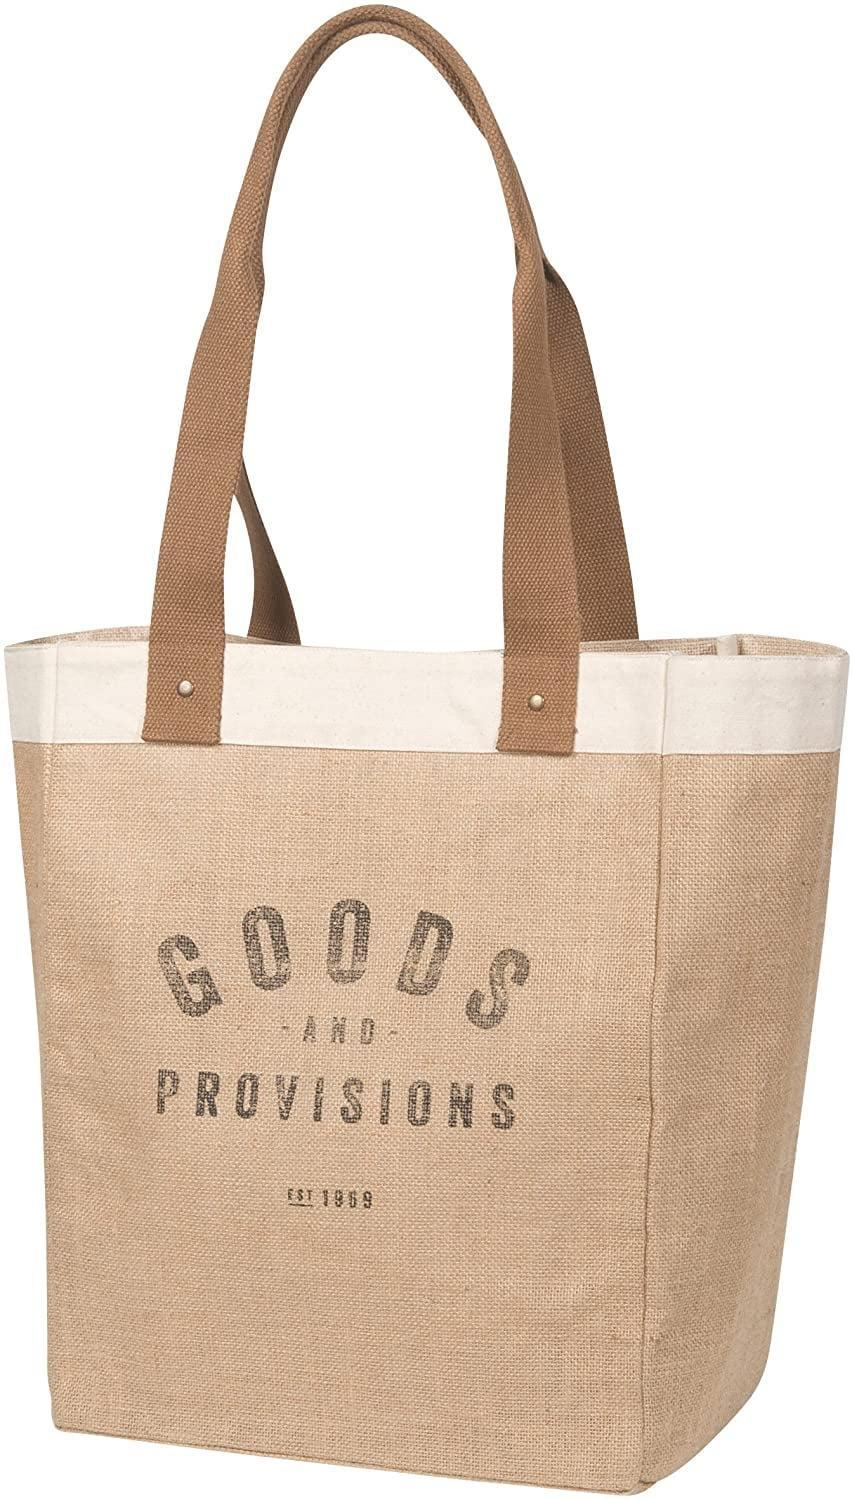 <p>This <span>Goods and Provisions Now Designs Burlap Market Tote</span> ($32) has enough room for groceries, books, a computer, and more.</p>